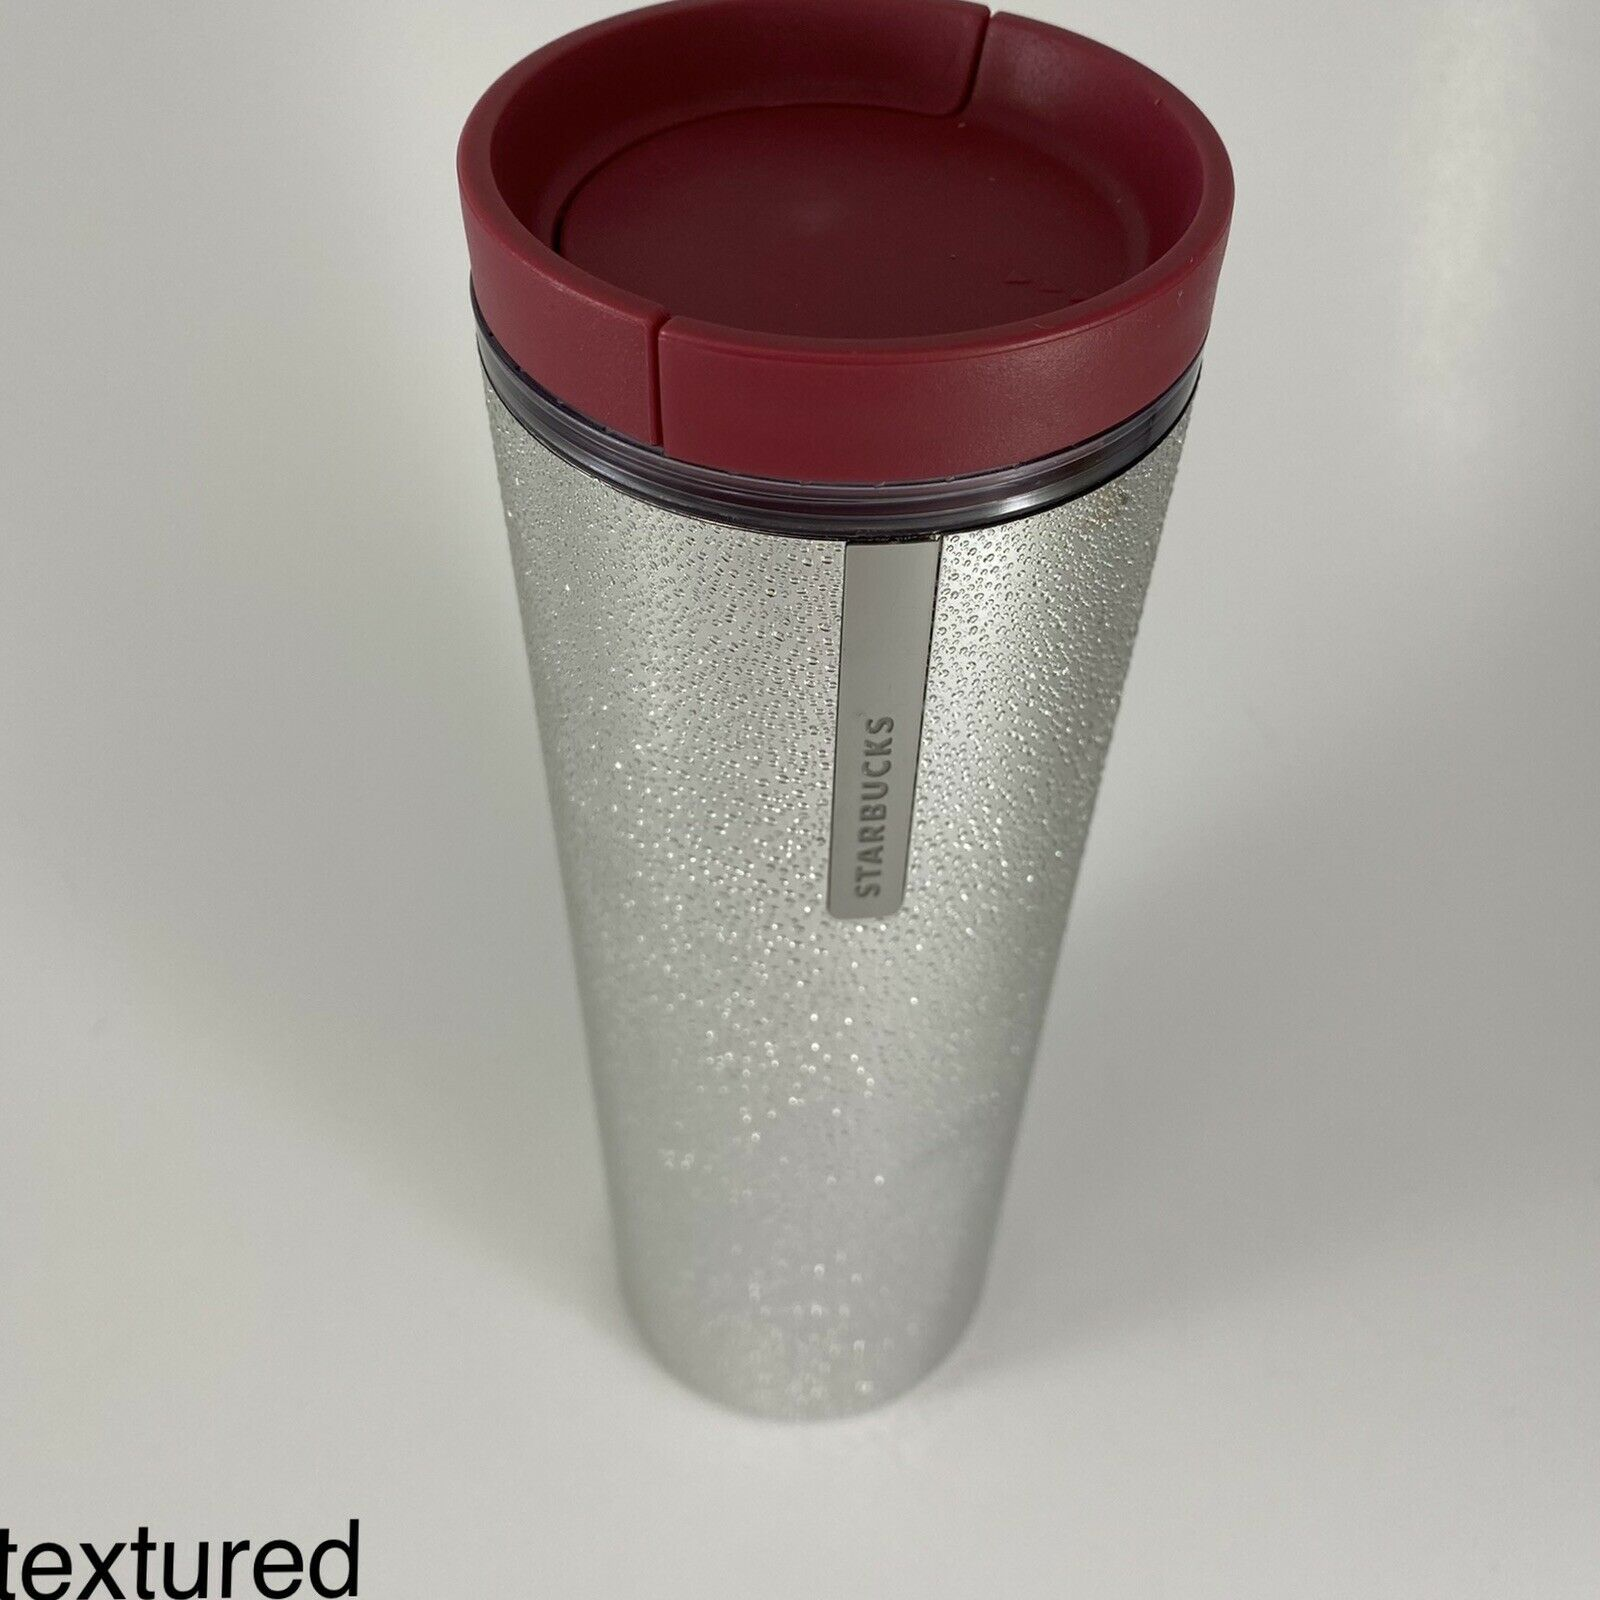 Primary image for Starbucks Textured Beaded Tumbler Silver 16 fl oz Bubbles - Crosby Holiday